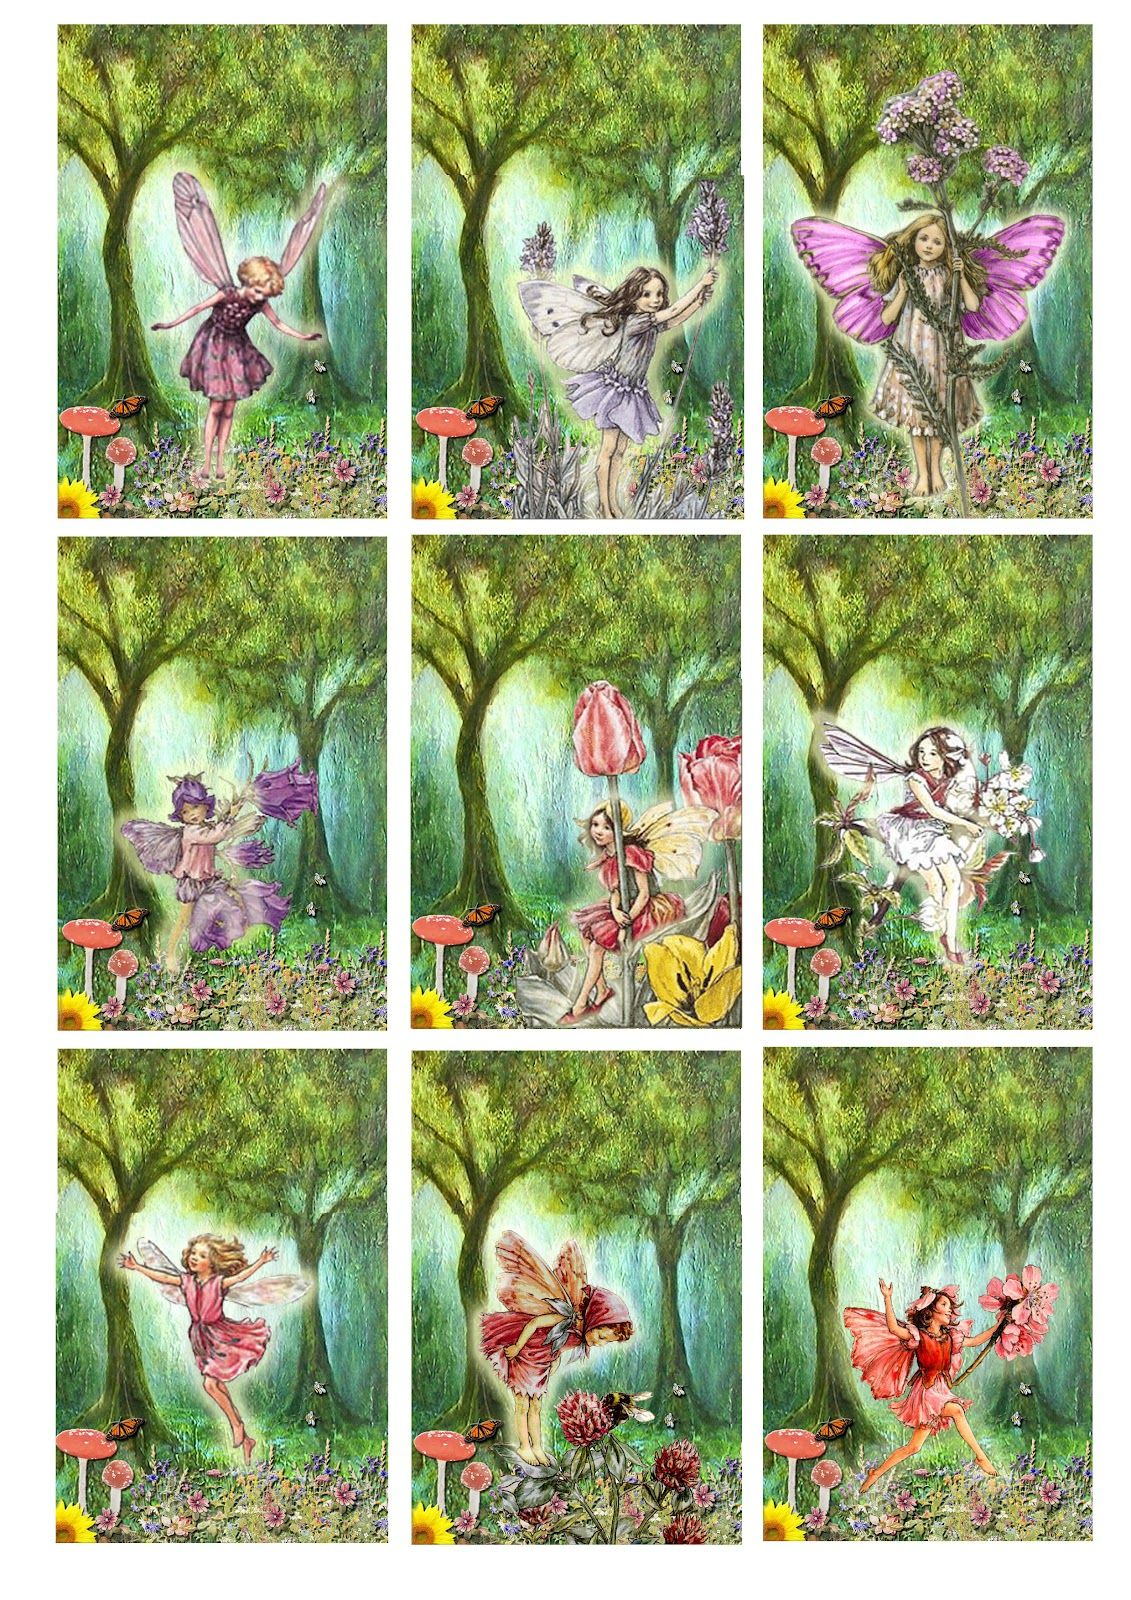 Flower+Fairies+Printable.jpg (1131×1600)